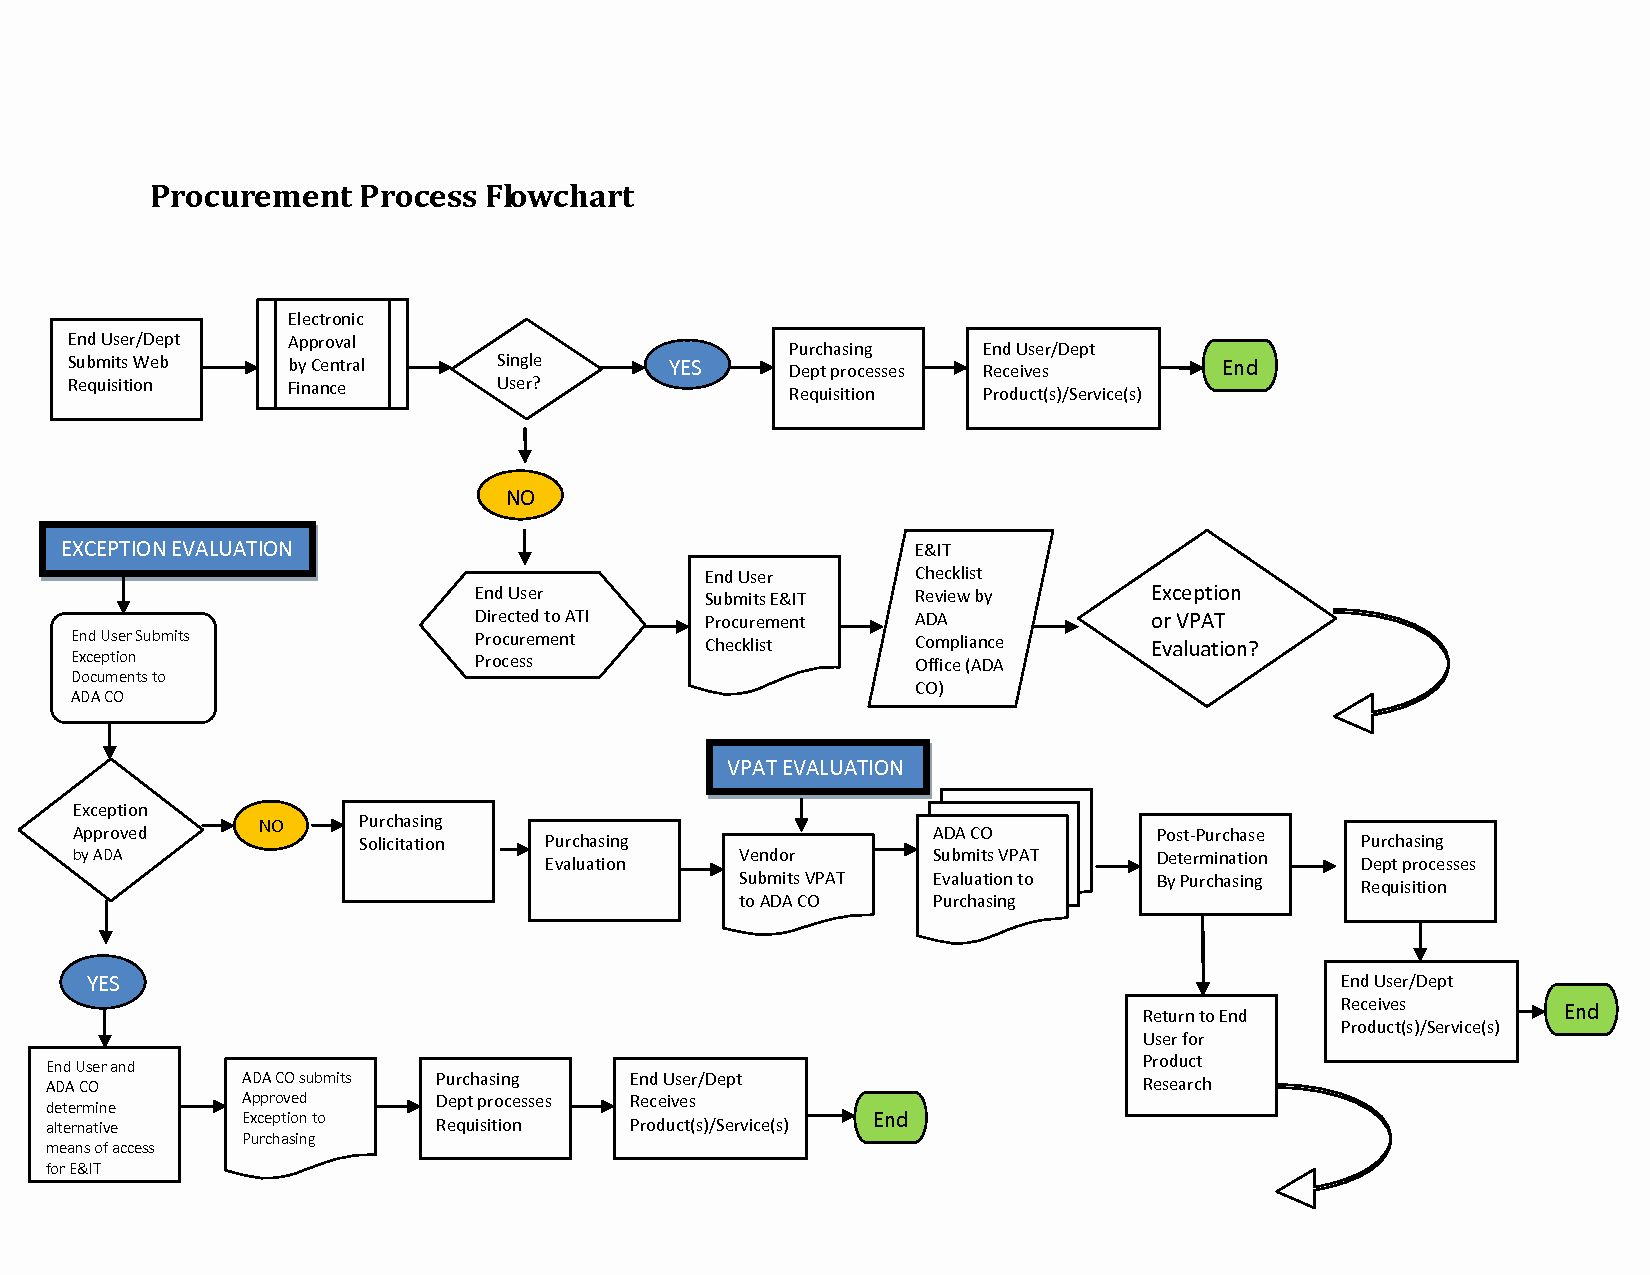 Process Flow Chart Template Luxury Supply Chain Flow Chart Wel E To Public Works Intranet Process Flow Chart Process Flow Process Flow Chart Template